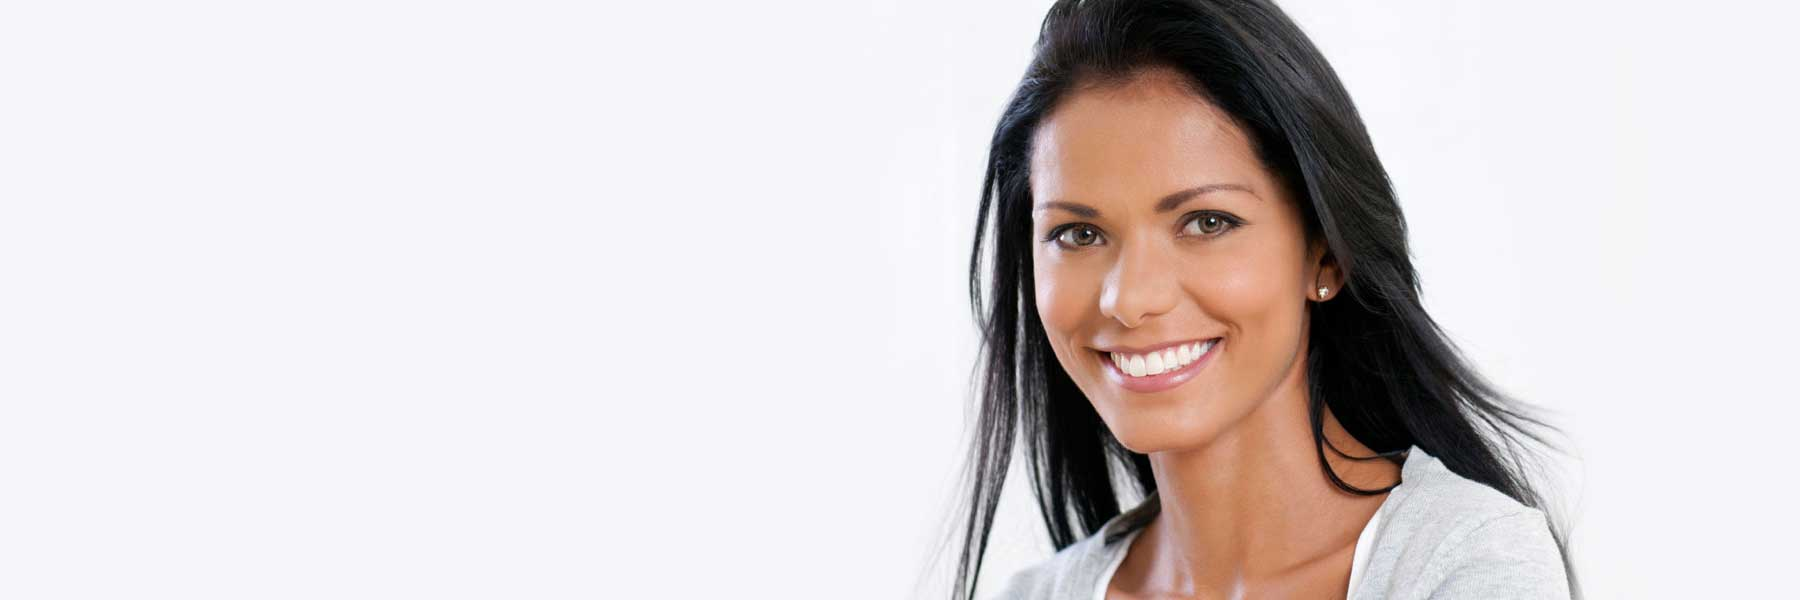 Cosmetic Dentistry in Jonesboro, AR